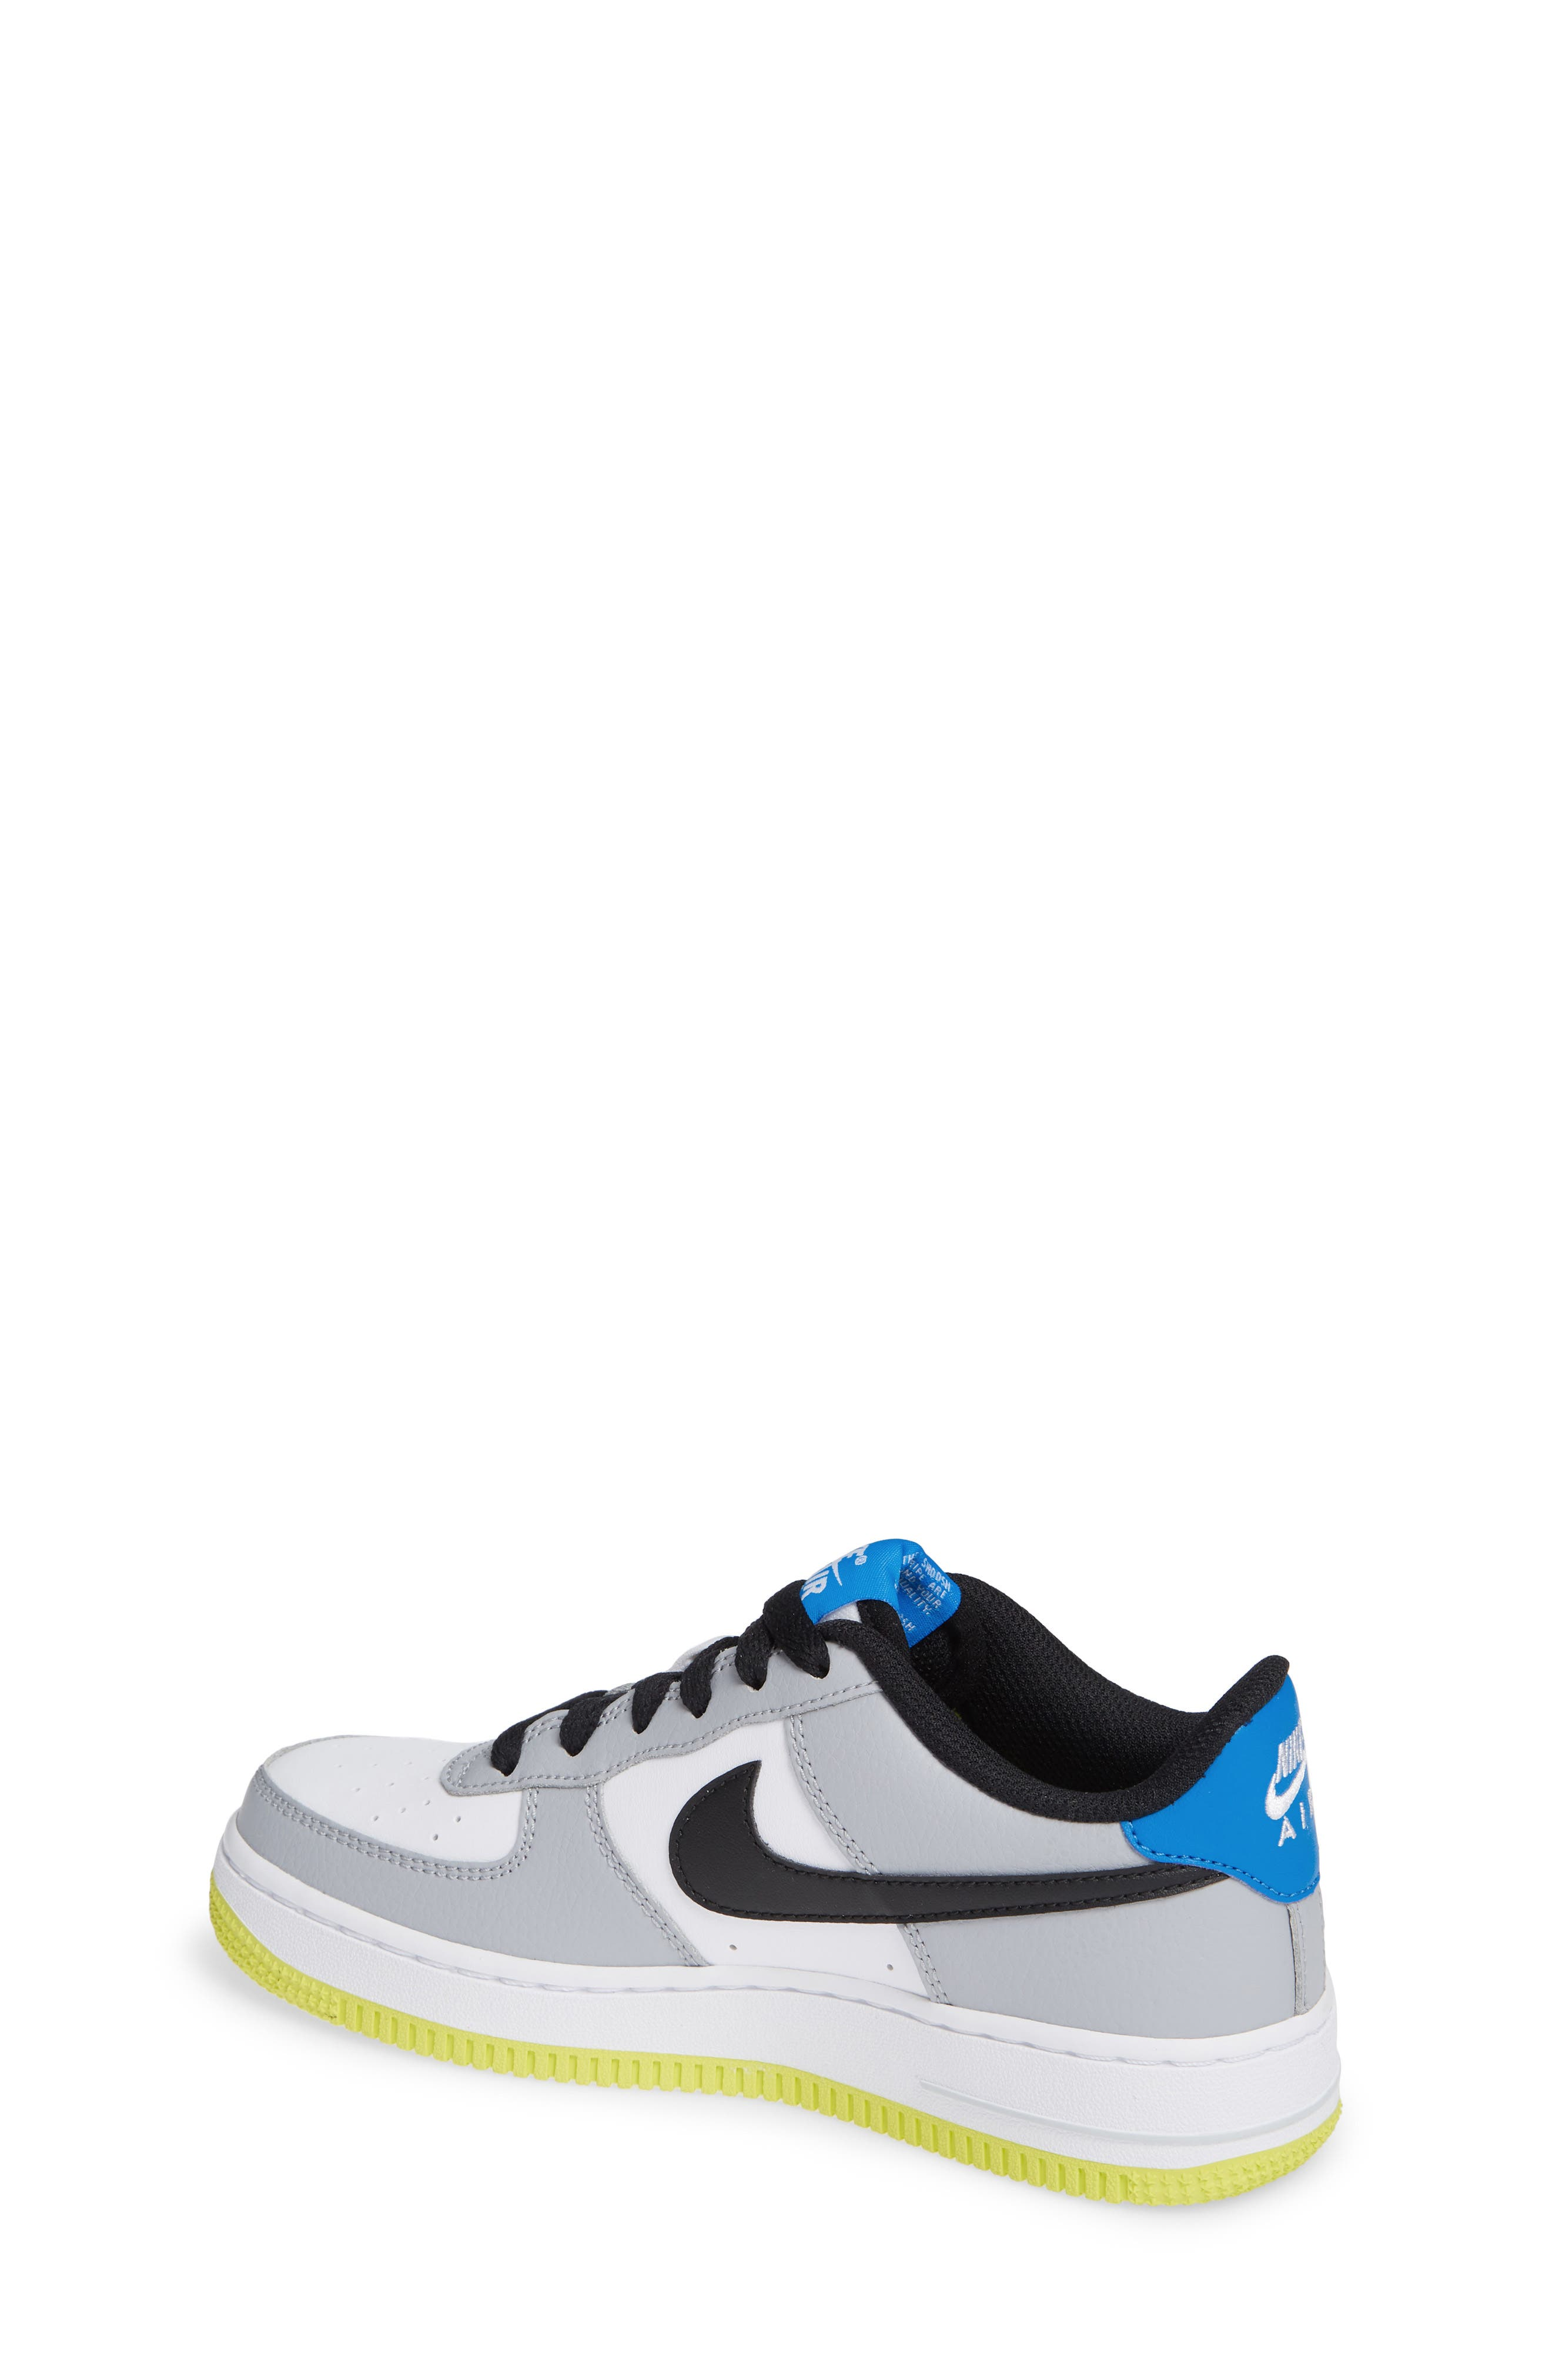 Air Force 1 Sneaker,                             Alternate thumbnail 2, color,                             Wolf Grey/ Black/ White/ Blue